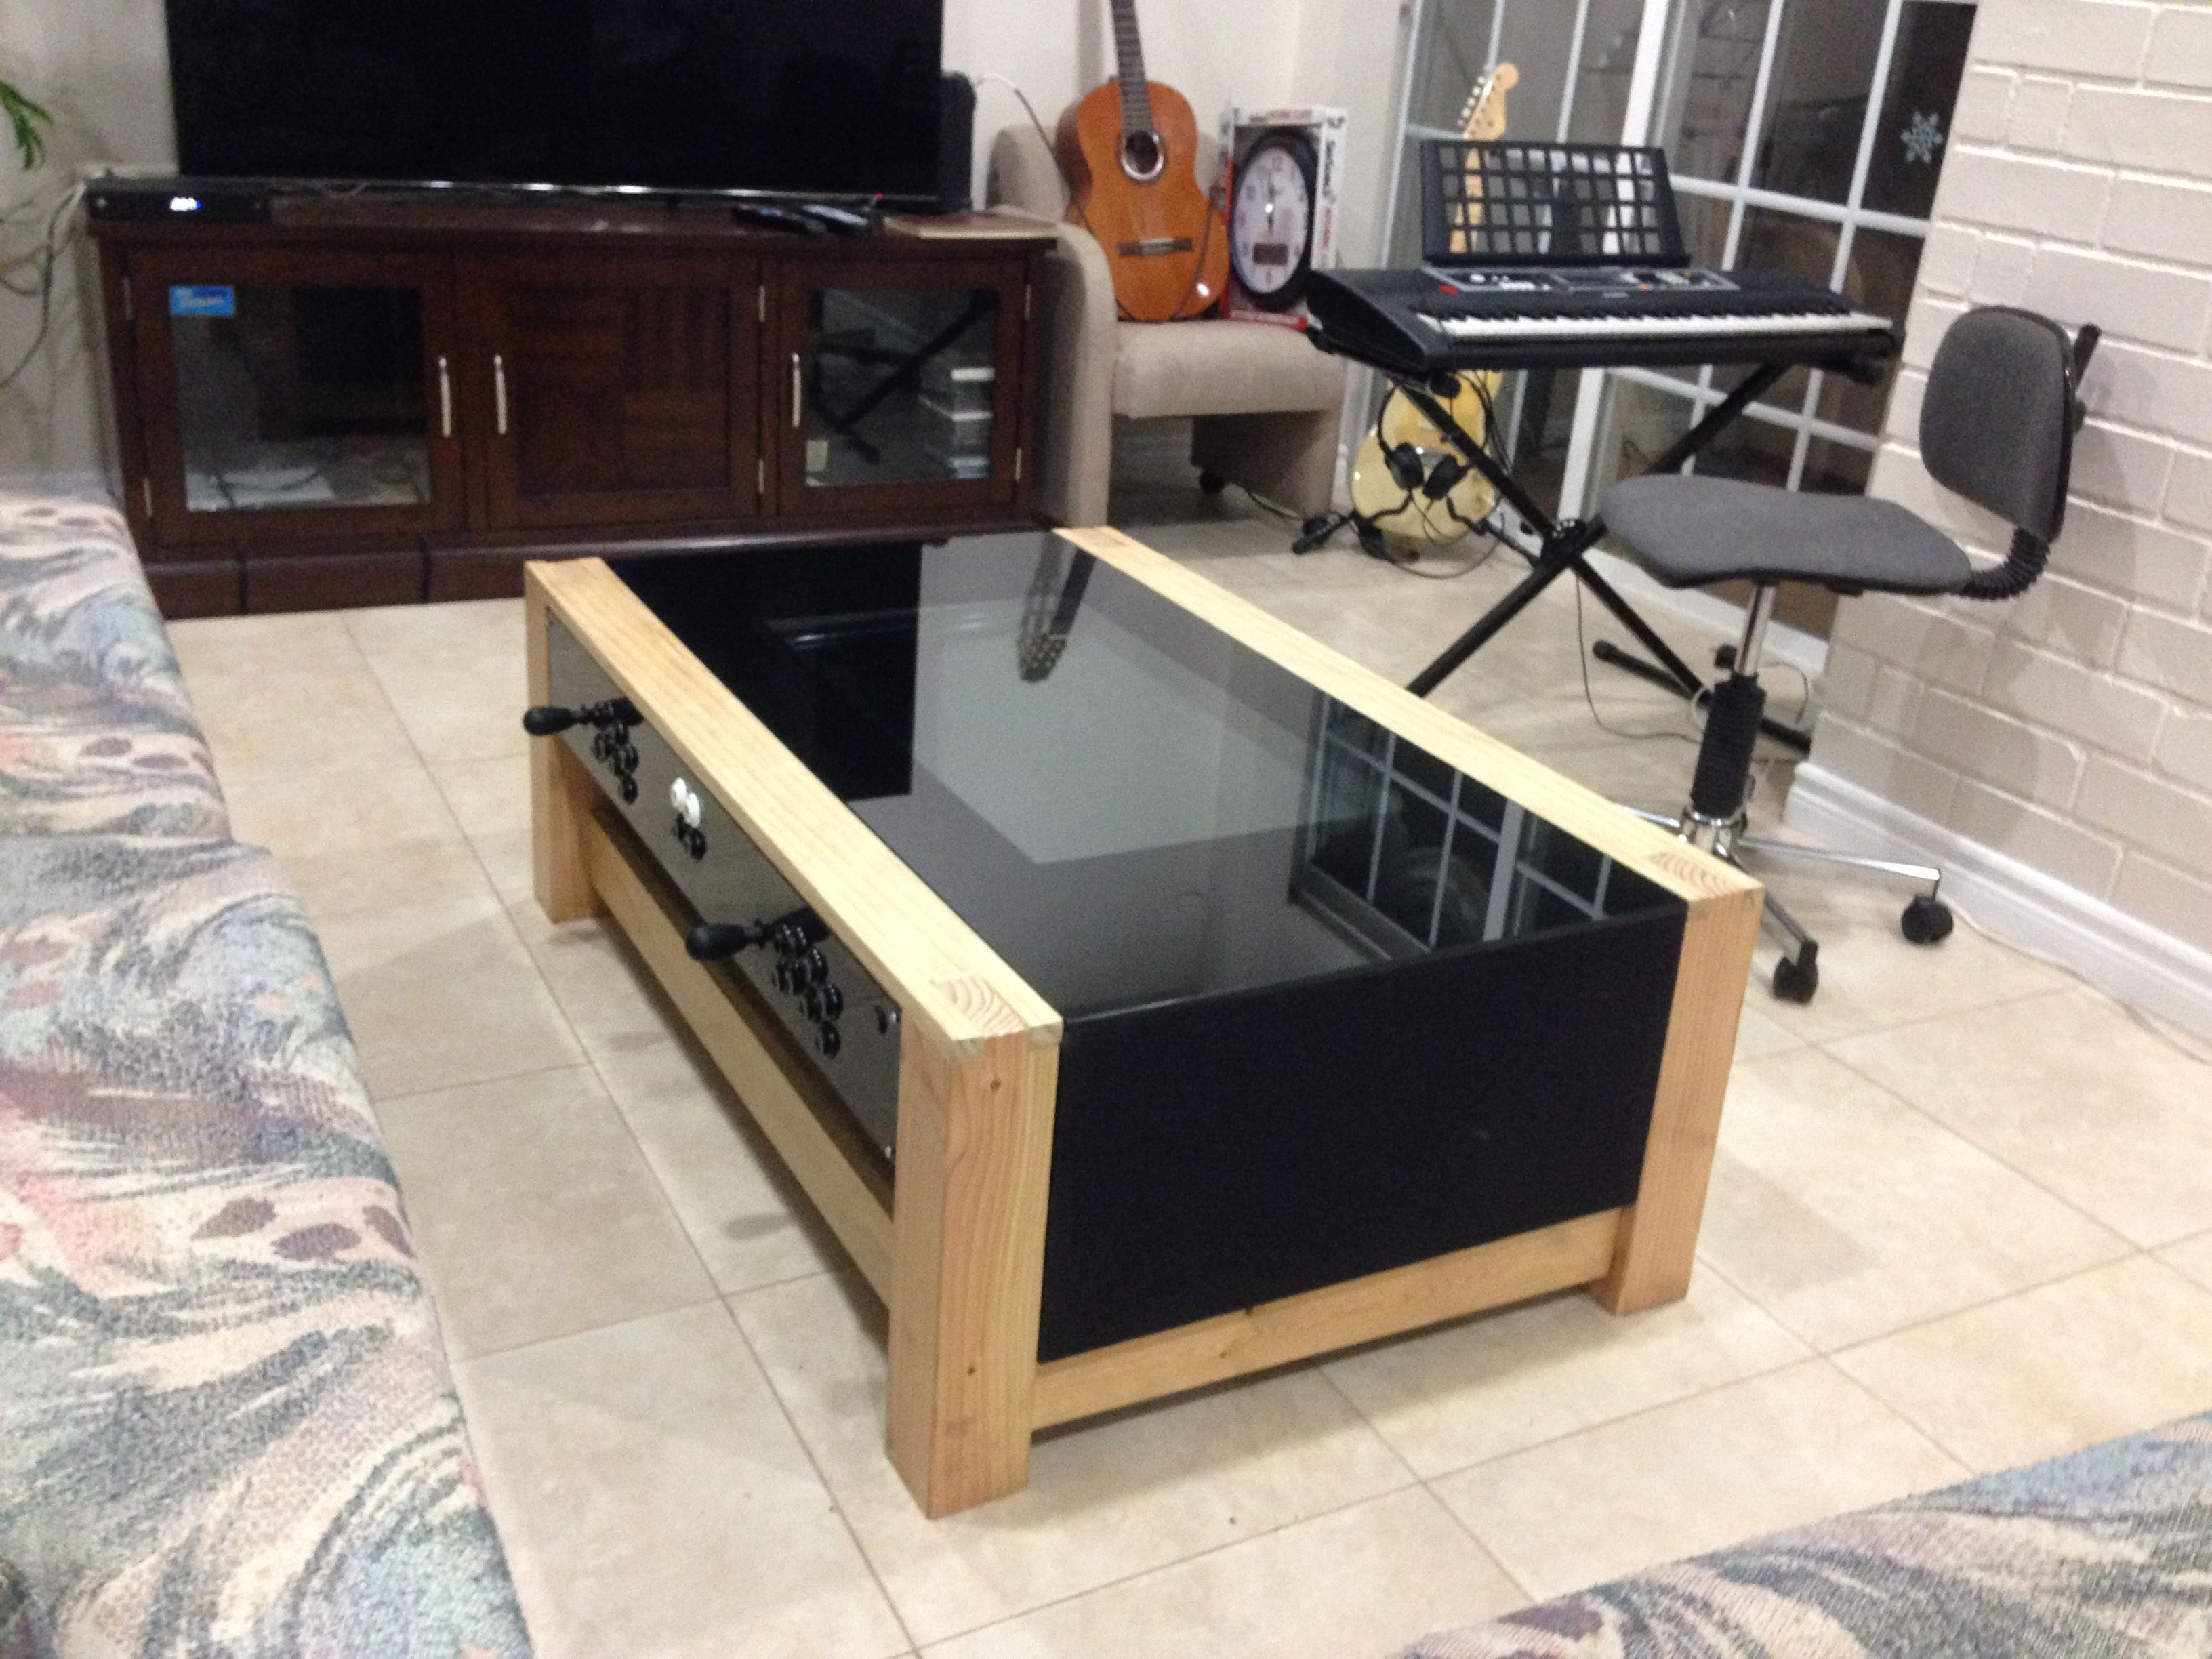 Diy Arcade Coffee Table Coffee Table Arcade Arcade Table